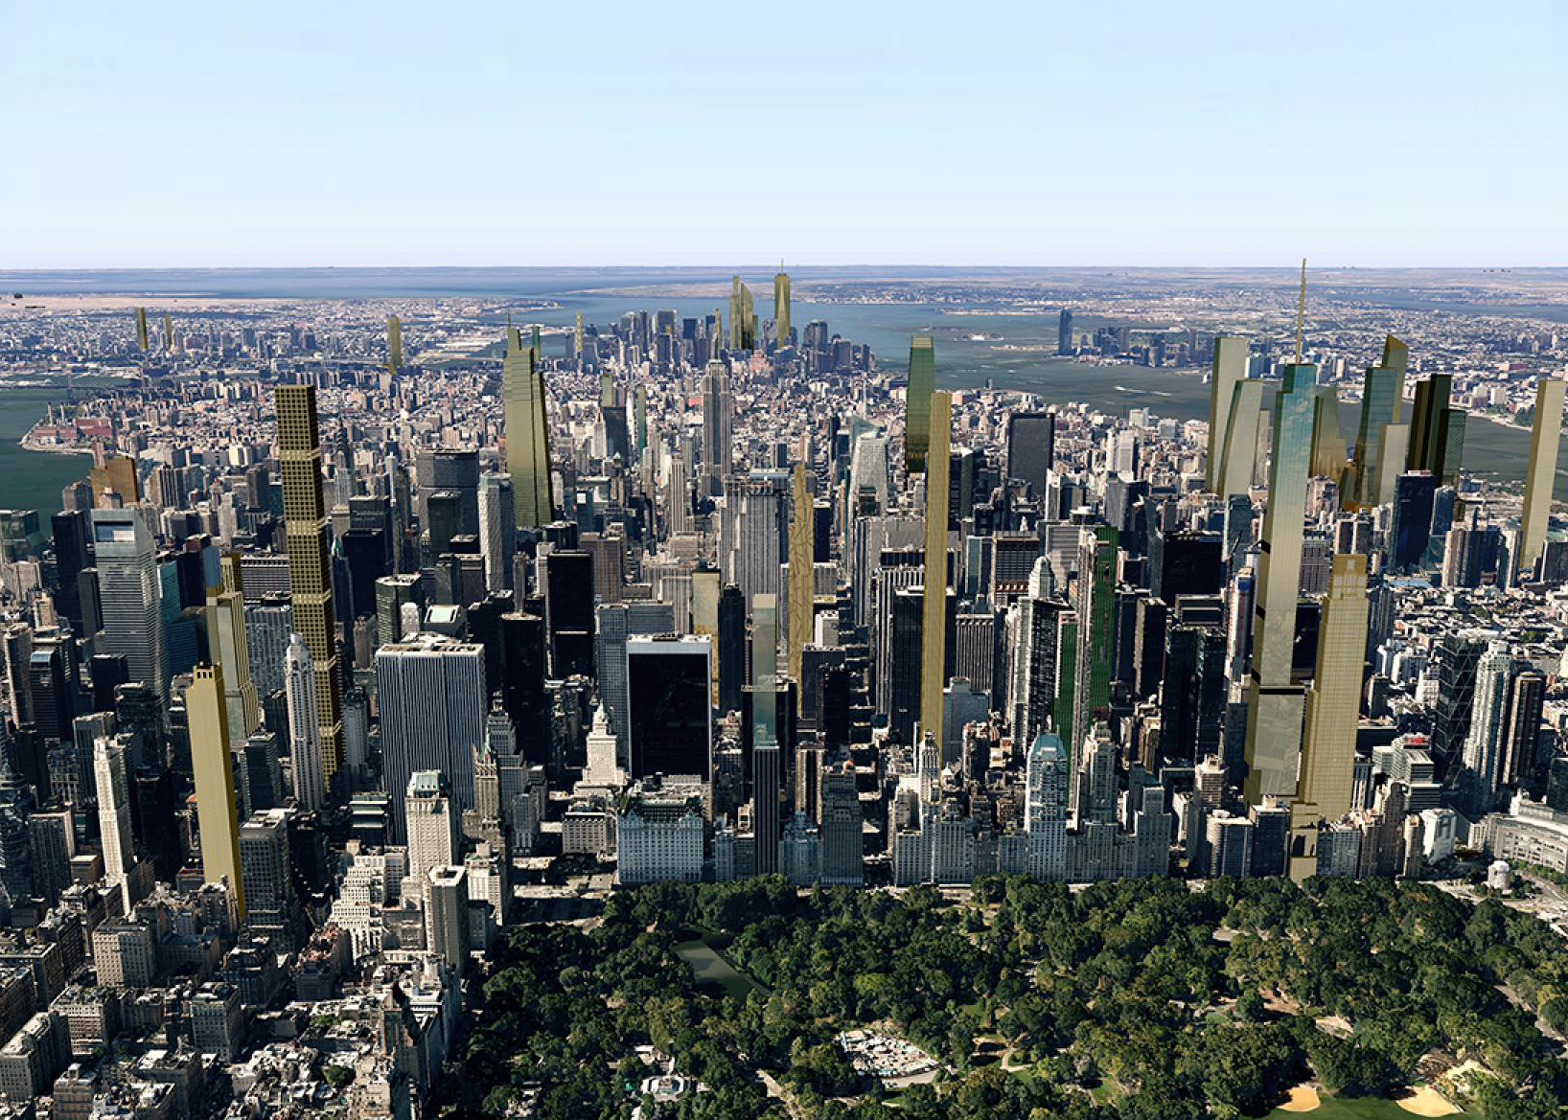 A visualisation of the New York skyline around Central Park in 2018